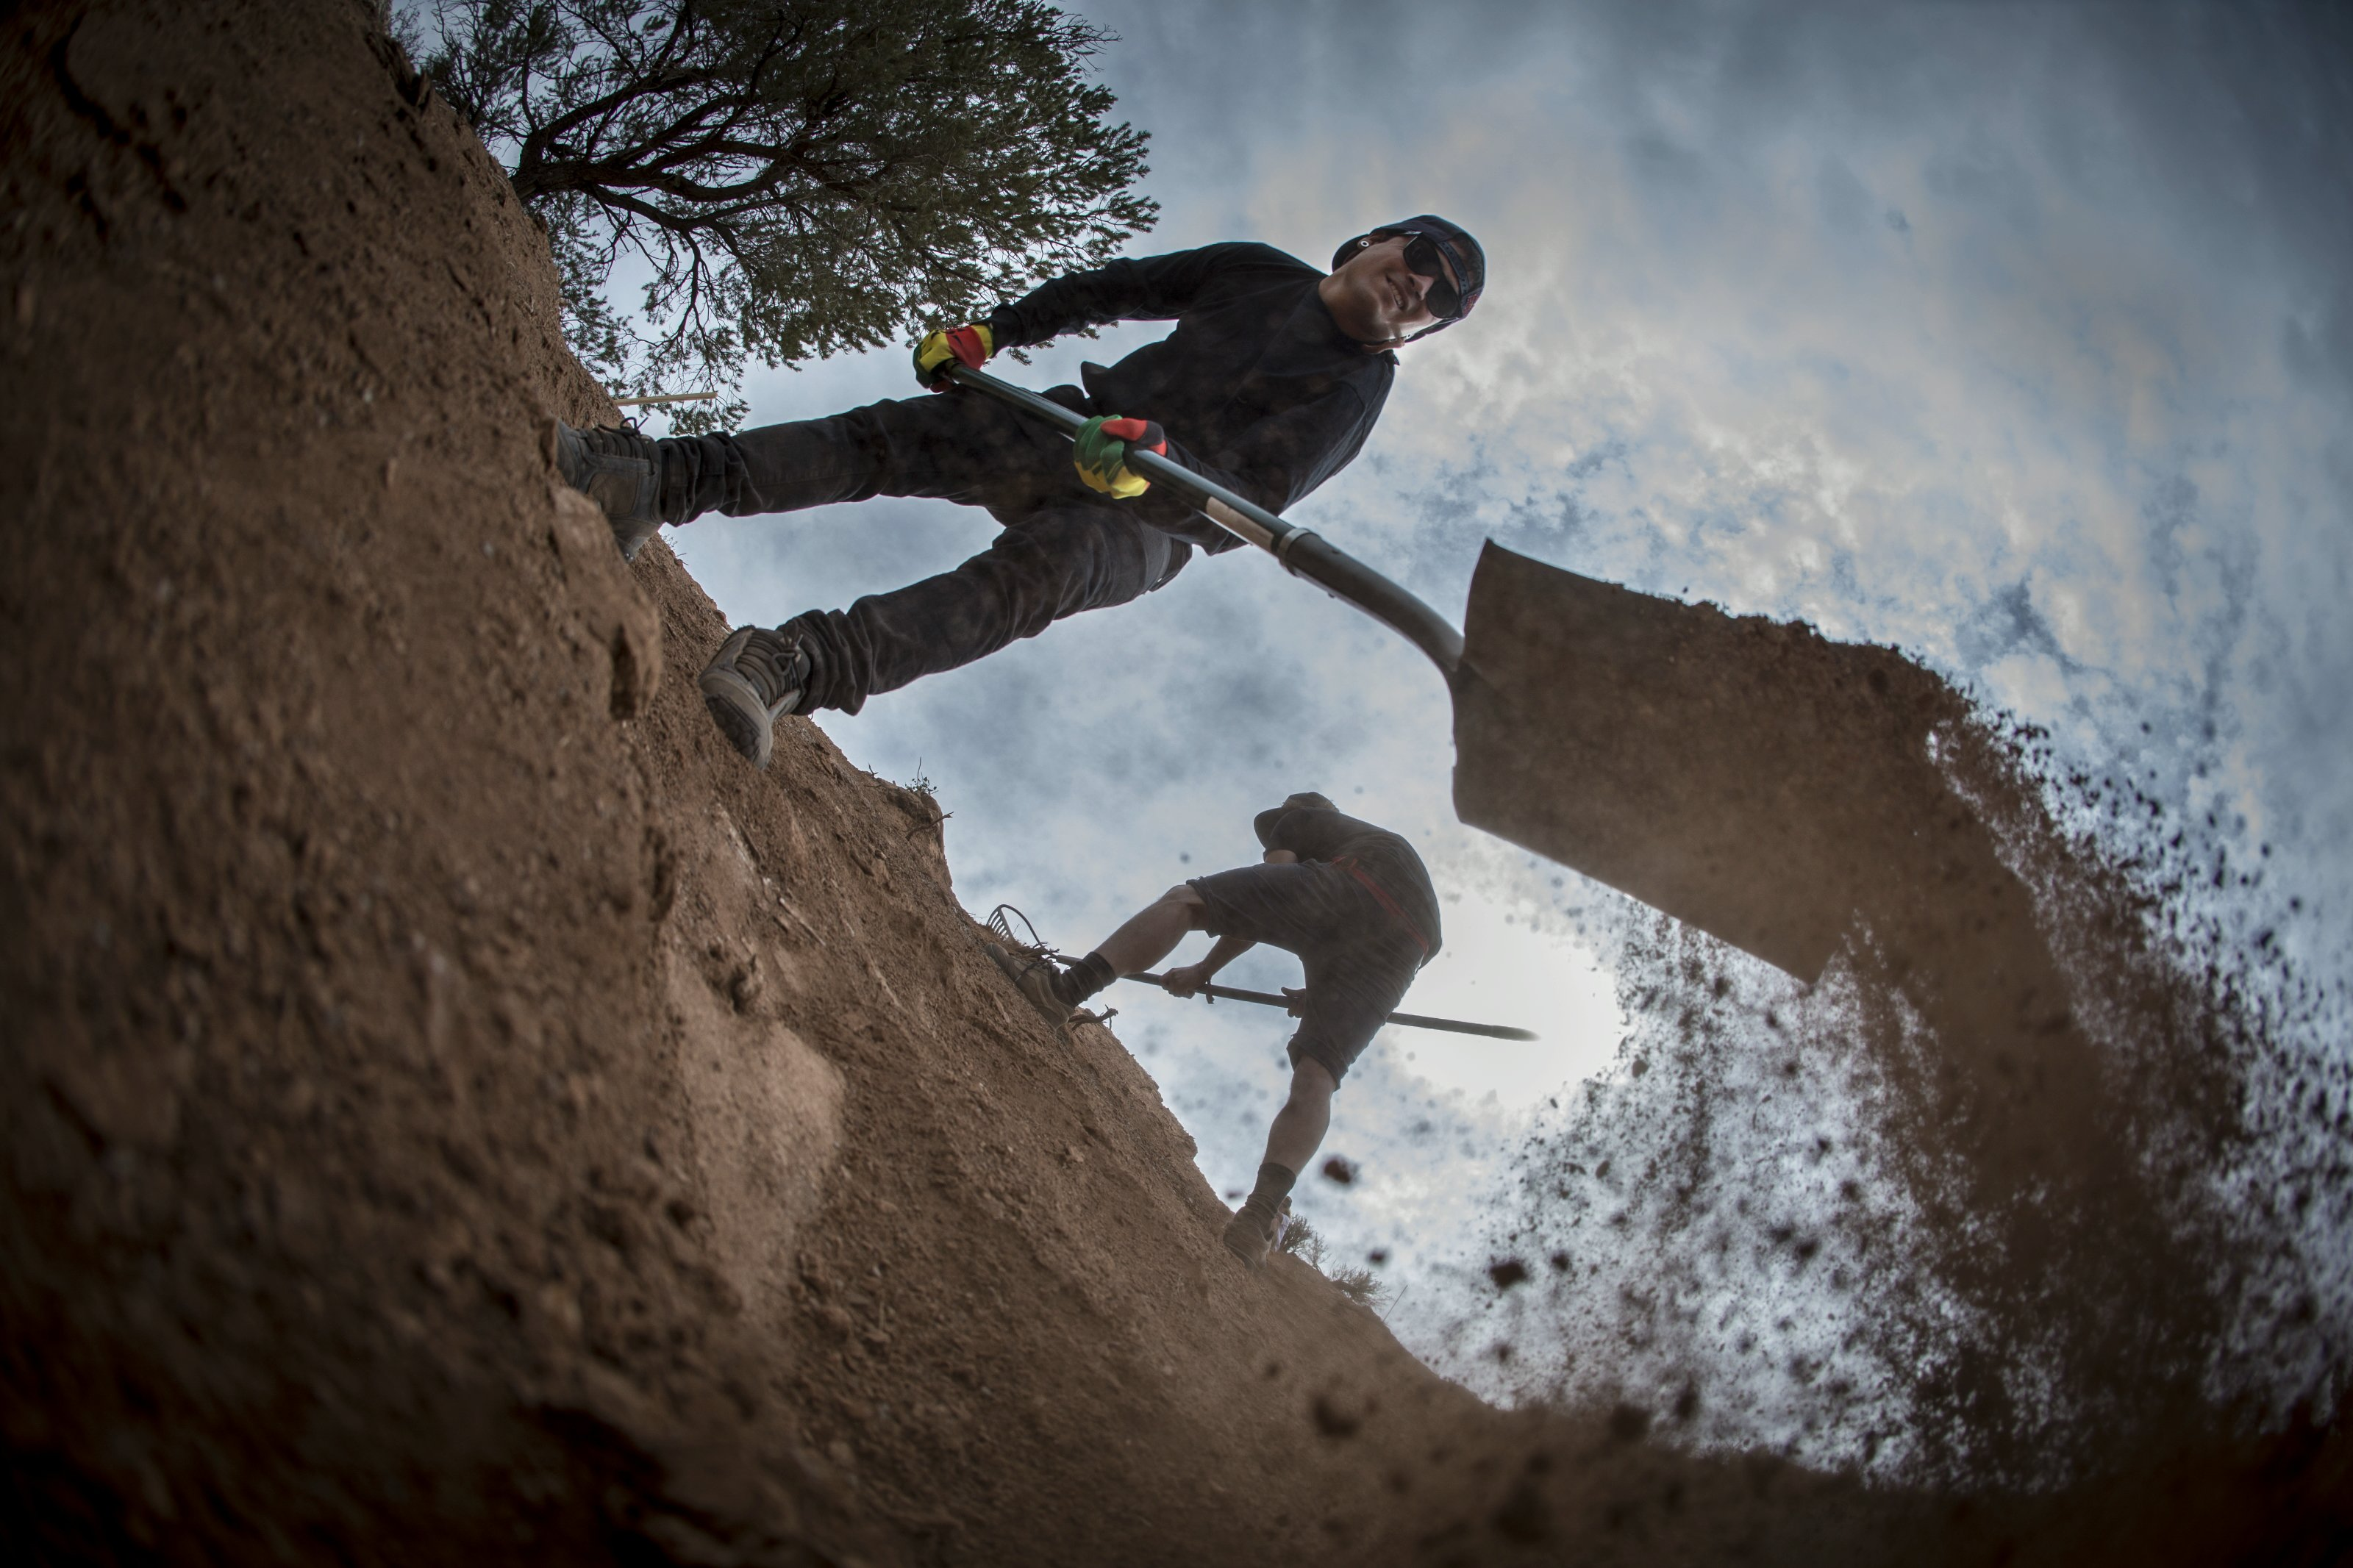 Andreu Lacondeguy prepares the course during Red Bull Rampage in Virgin, Utah, USA, on 9 October 2013. // Christian Pondella/Red Bull Content Pool // P-20131010-00007 // Usage for editorial use only // Please go to www.redbullcontentpool.com for further information. //